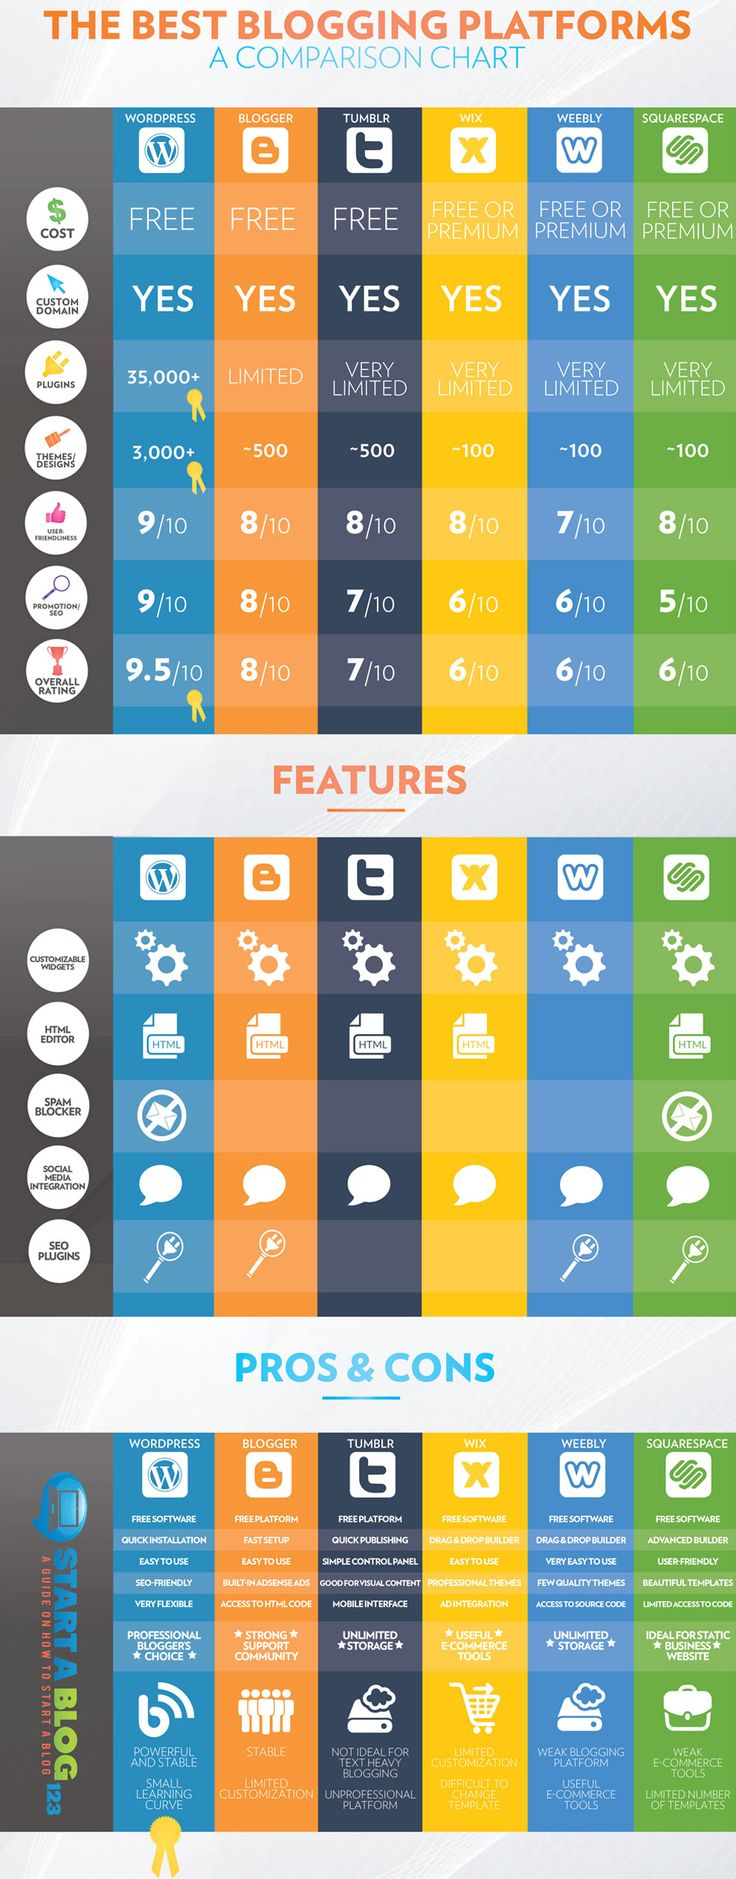 Helpful infographic with pros and cons from each blog platform. How to Choose the Best Blogging Platform http://www.finearttips.com/2015/06/how-to-choose-the-best-blogging-platform/